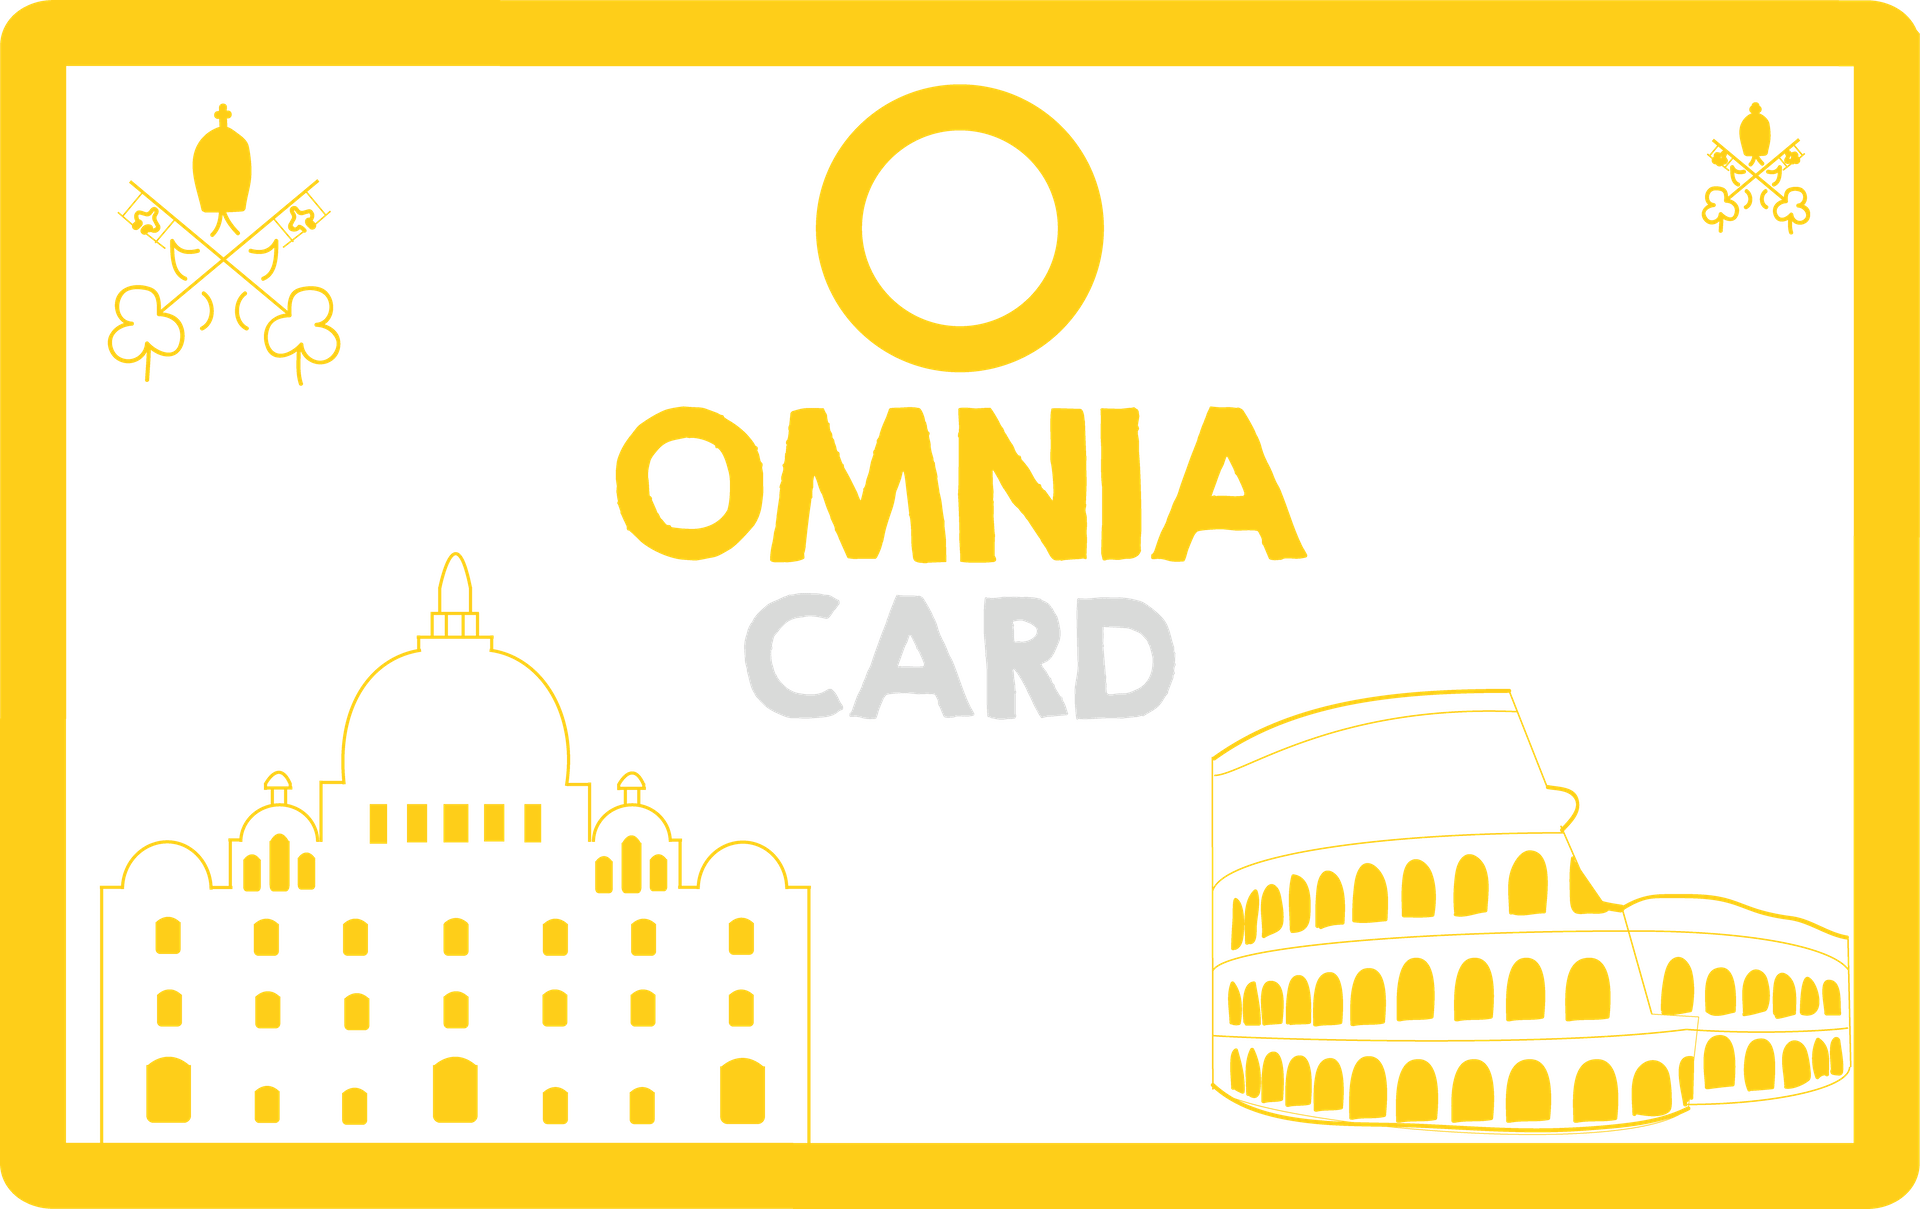 omnia card st paul outside the walls tour